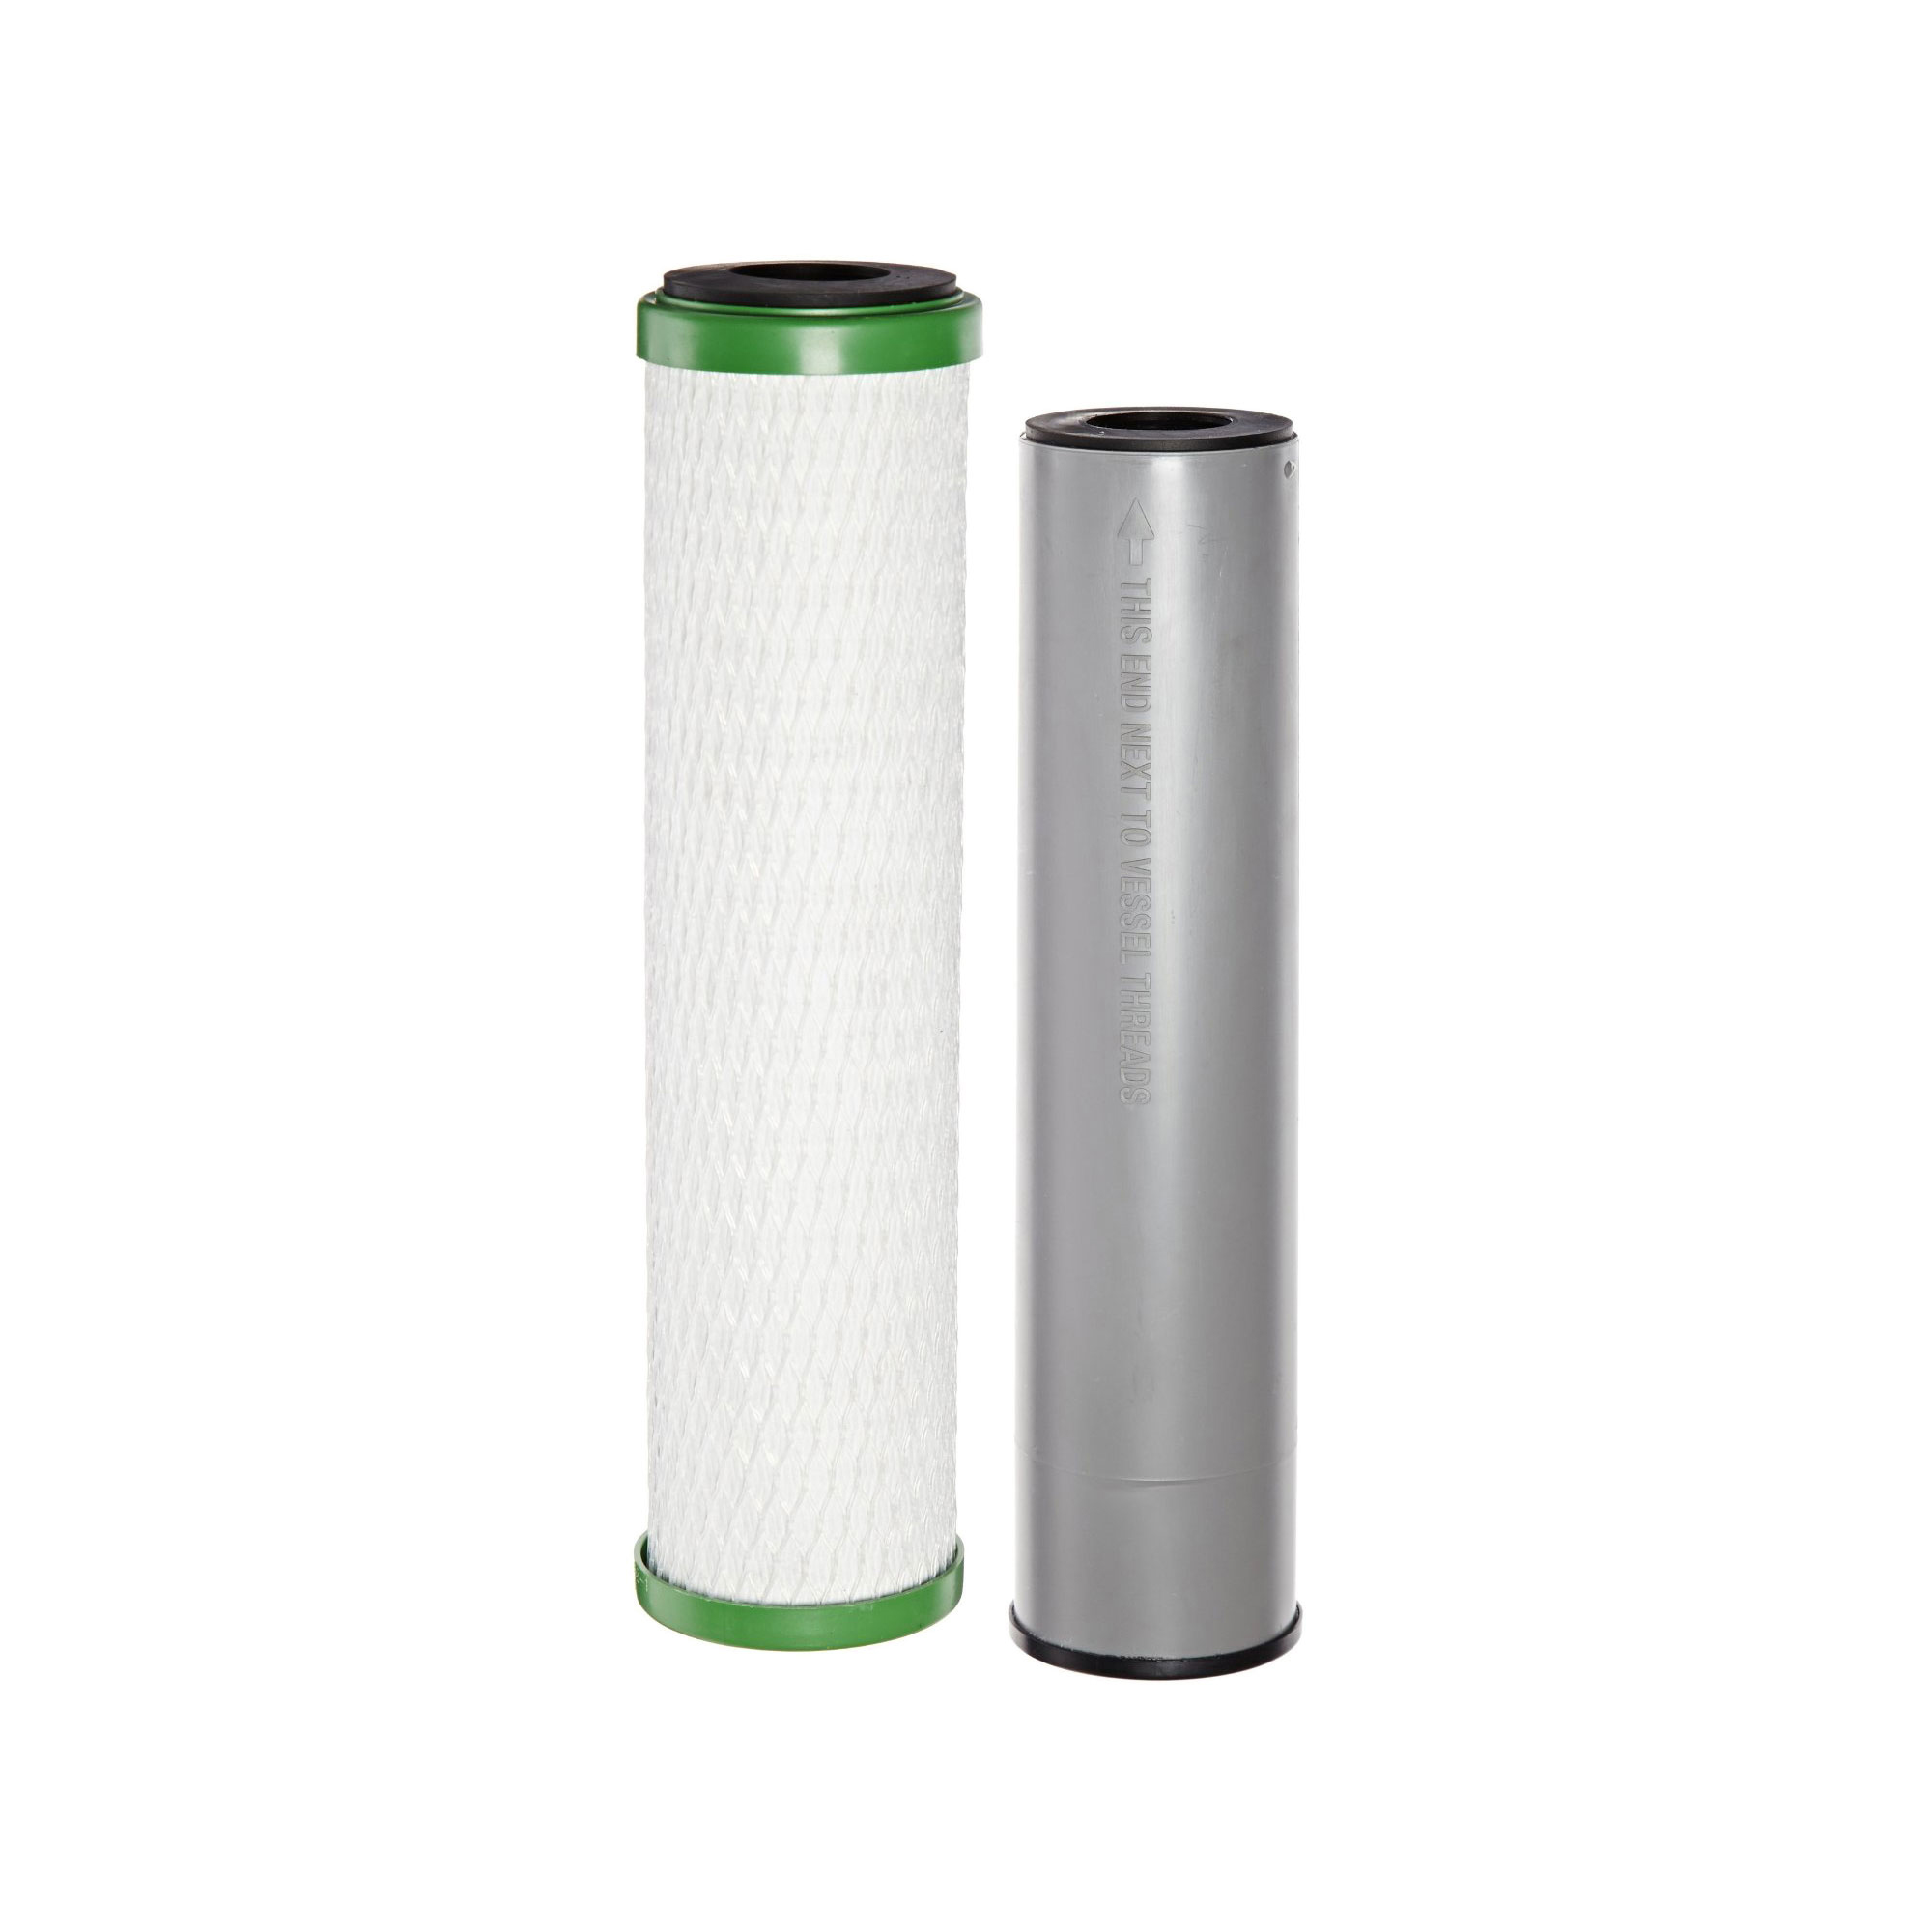 P-250 Pentek Comparable Under Sink Water Filter Set by Tier1